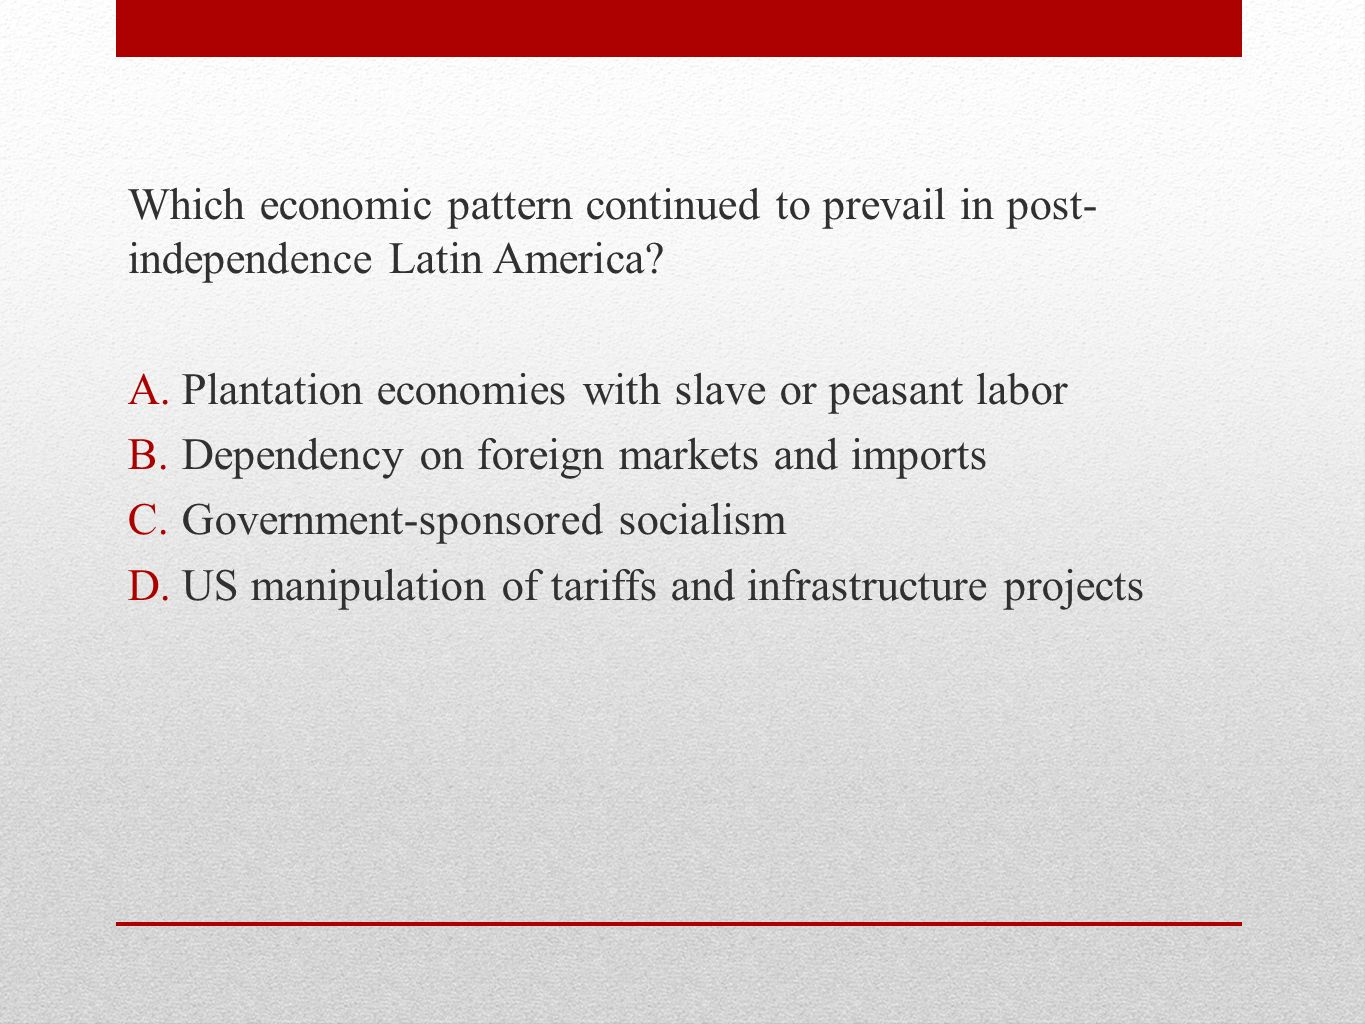 Which economic pattern continued to prevail in post-independence Latin America